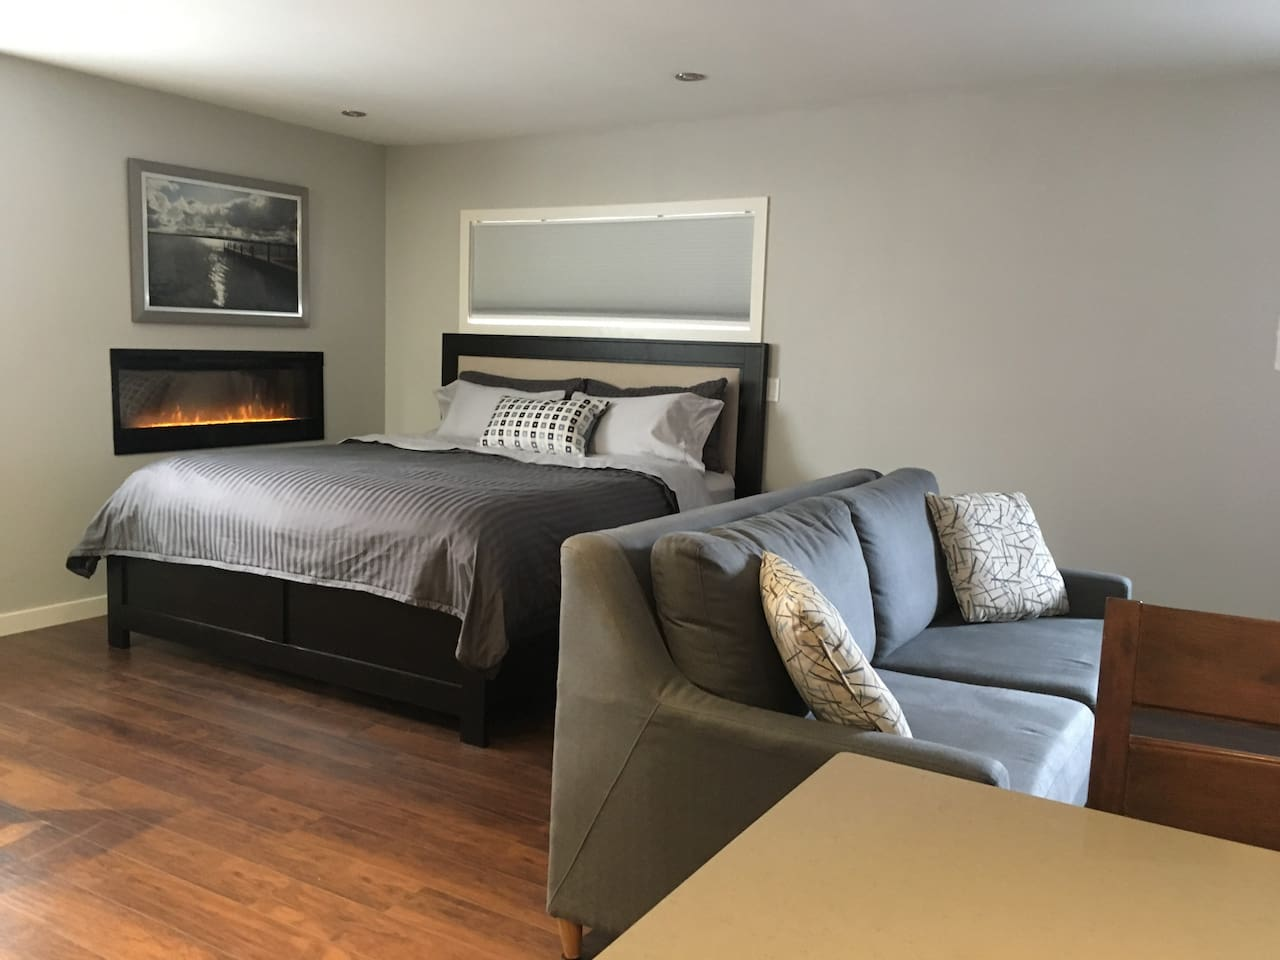 King size bed, pull out sofa bed, electric fireplace